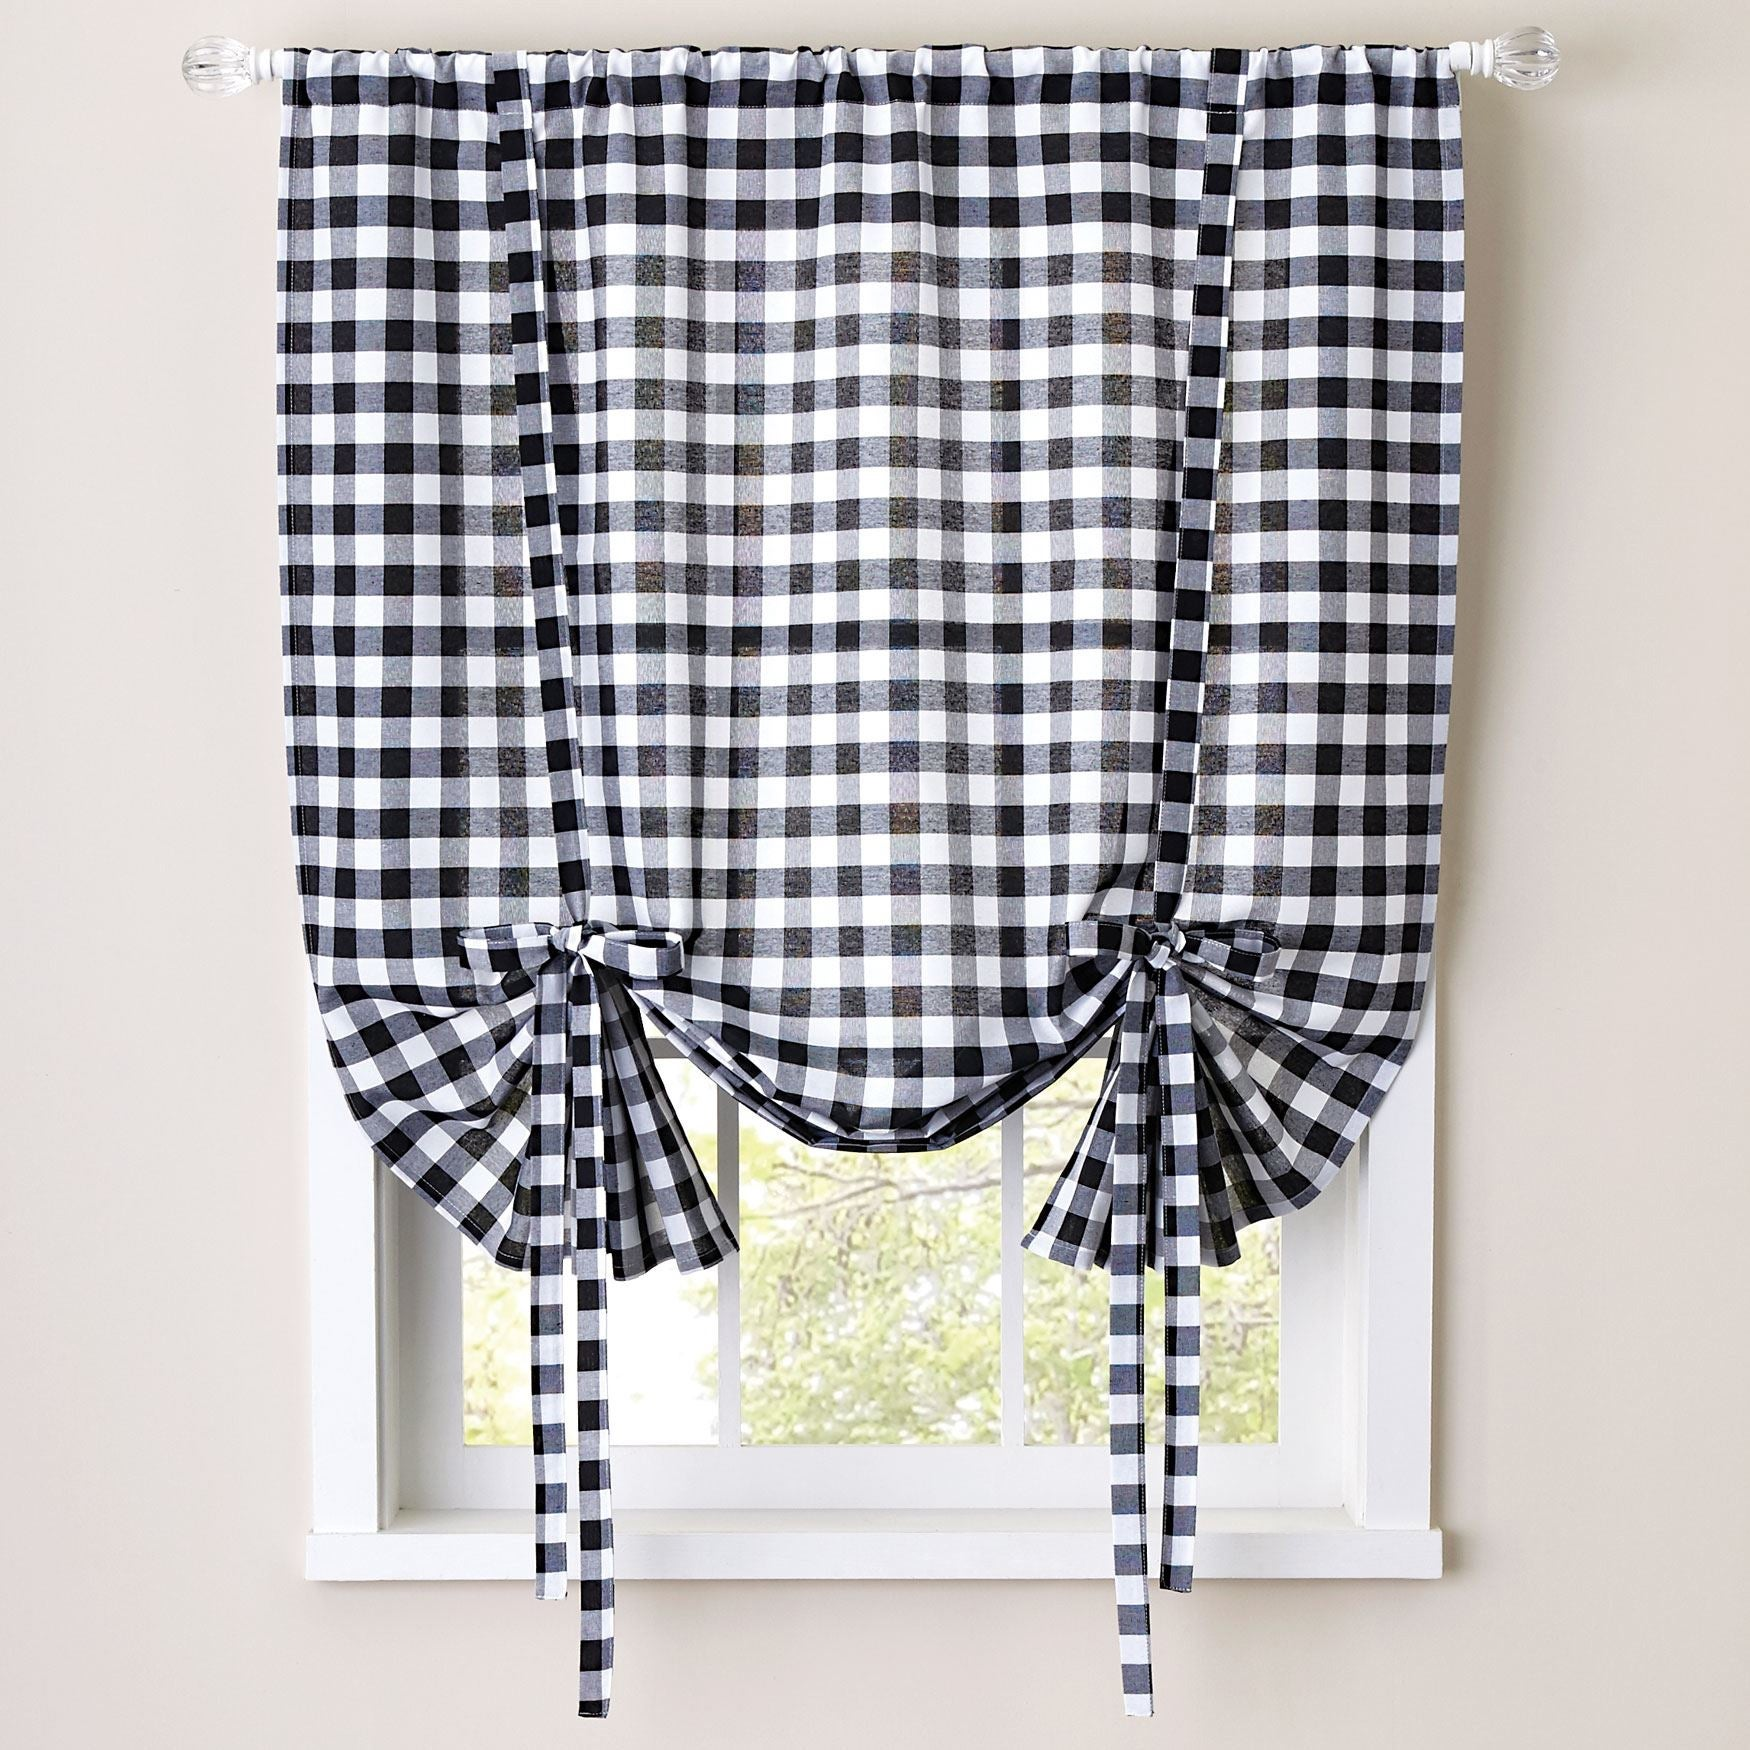 Buffalo Check Decorative Tie Up Shade In Burgundy As Is Item Burgundy Red Tie Up Shades Sweet Home Collection Decor